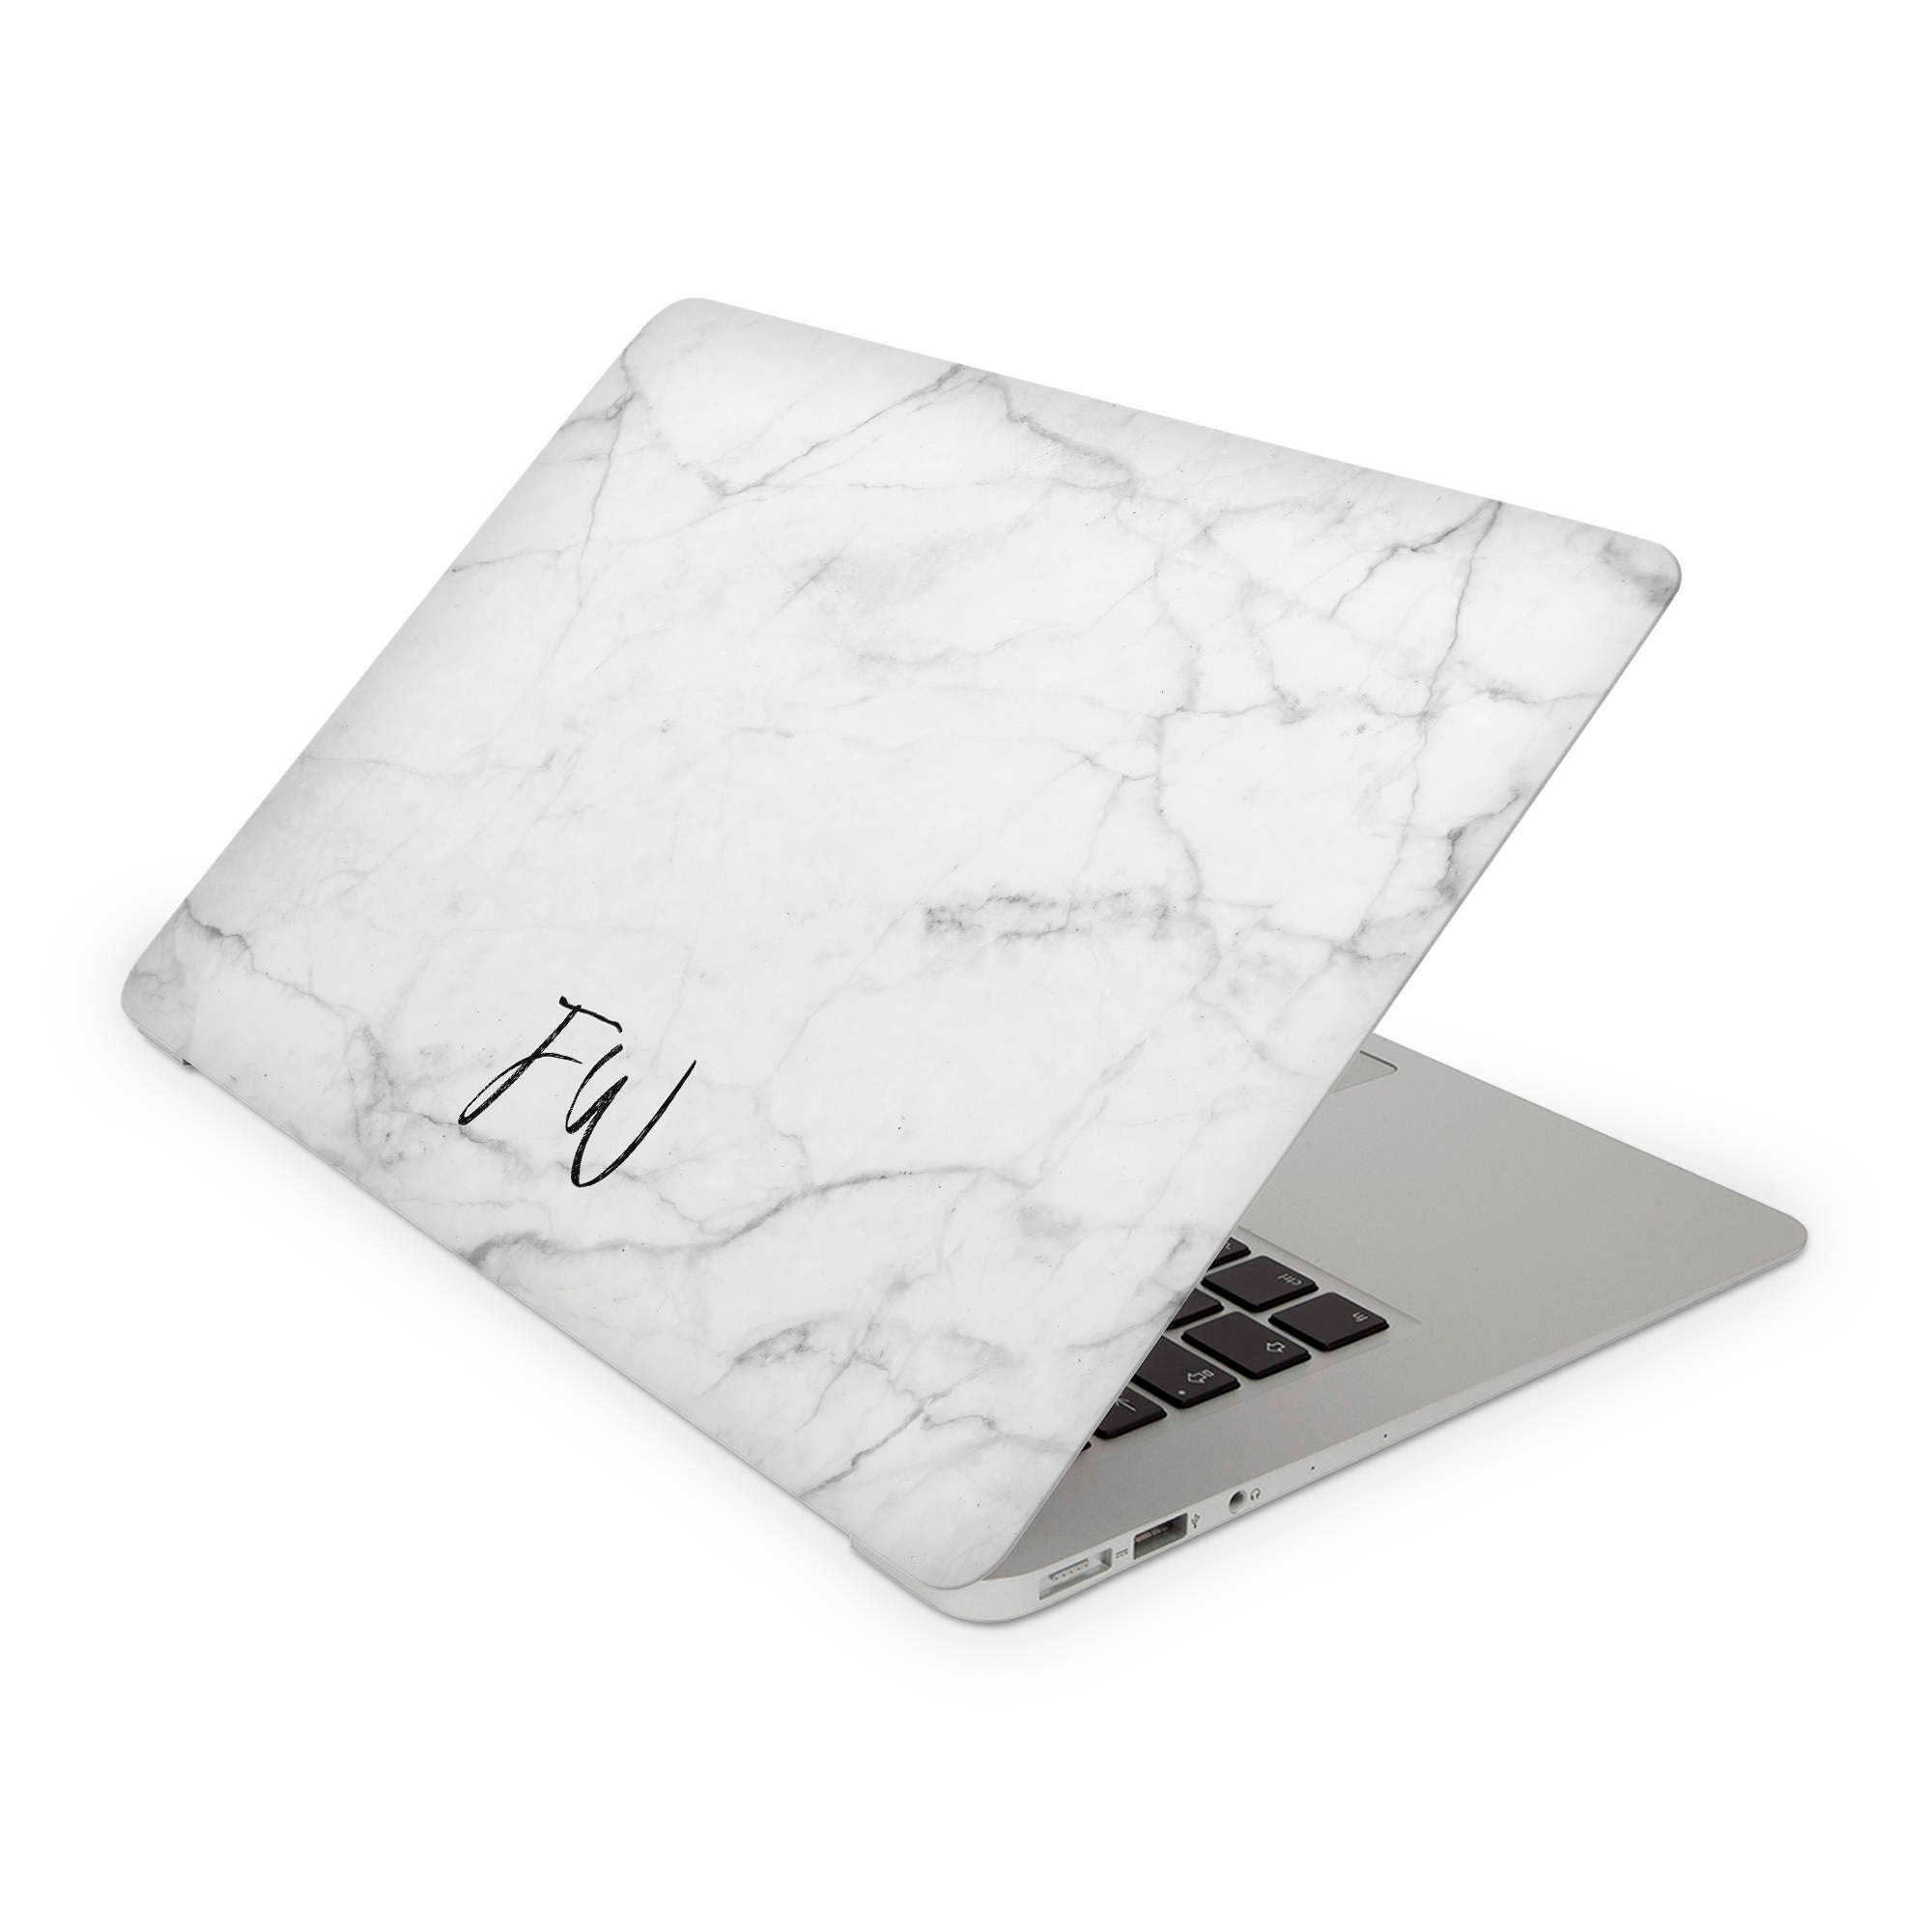 Personalised Marble Macbook Case  Macbook Case protection  MacBook Pro  MacBook Air  MacBook pro Retina  Macbook Pro 2016